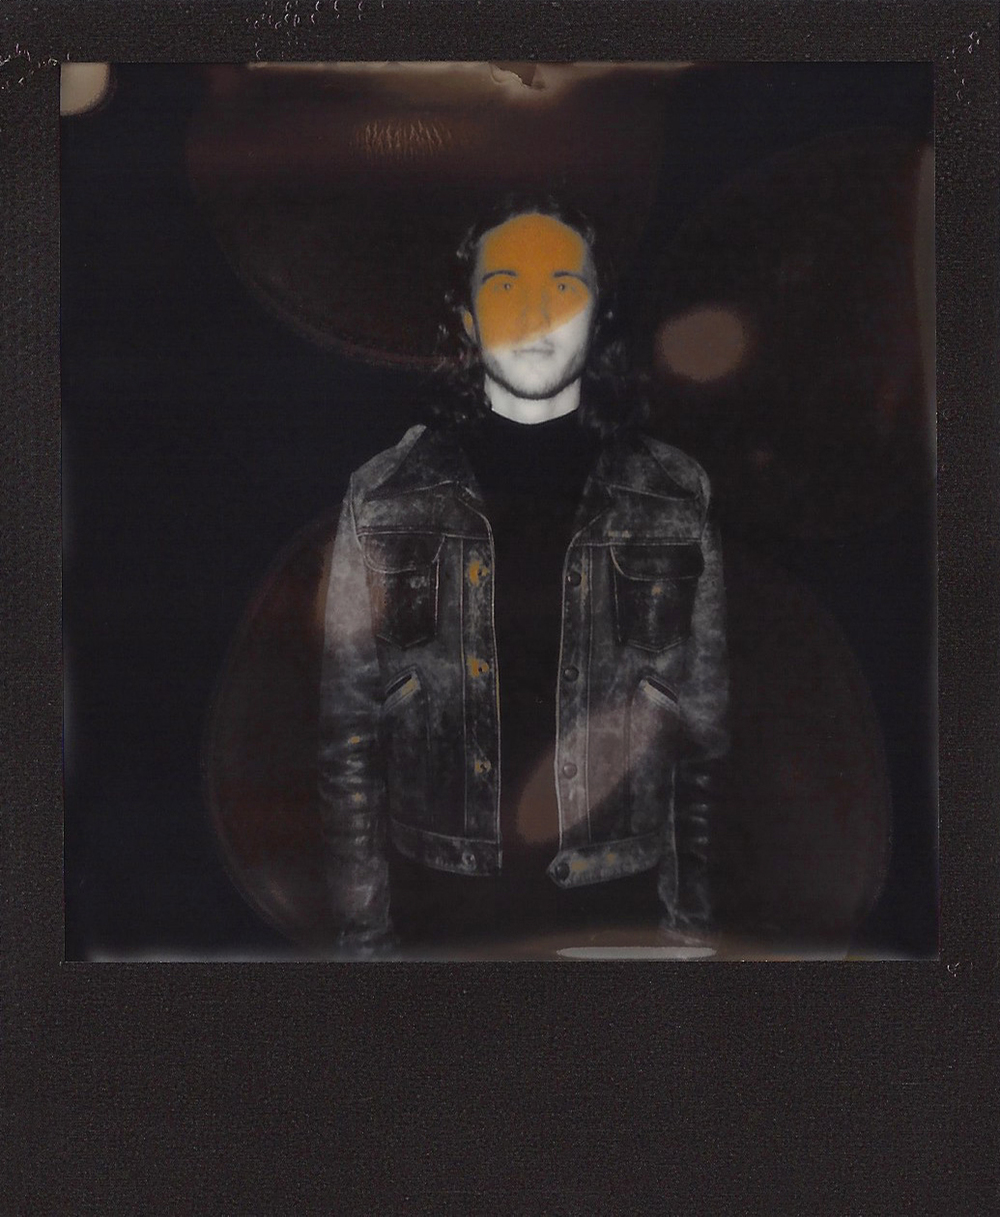 The-NBHD-Polaroid-21-casenruiz.jpg